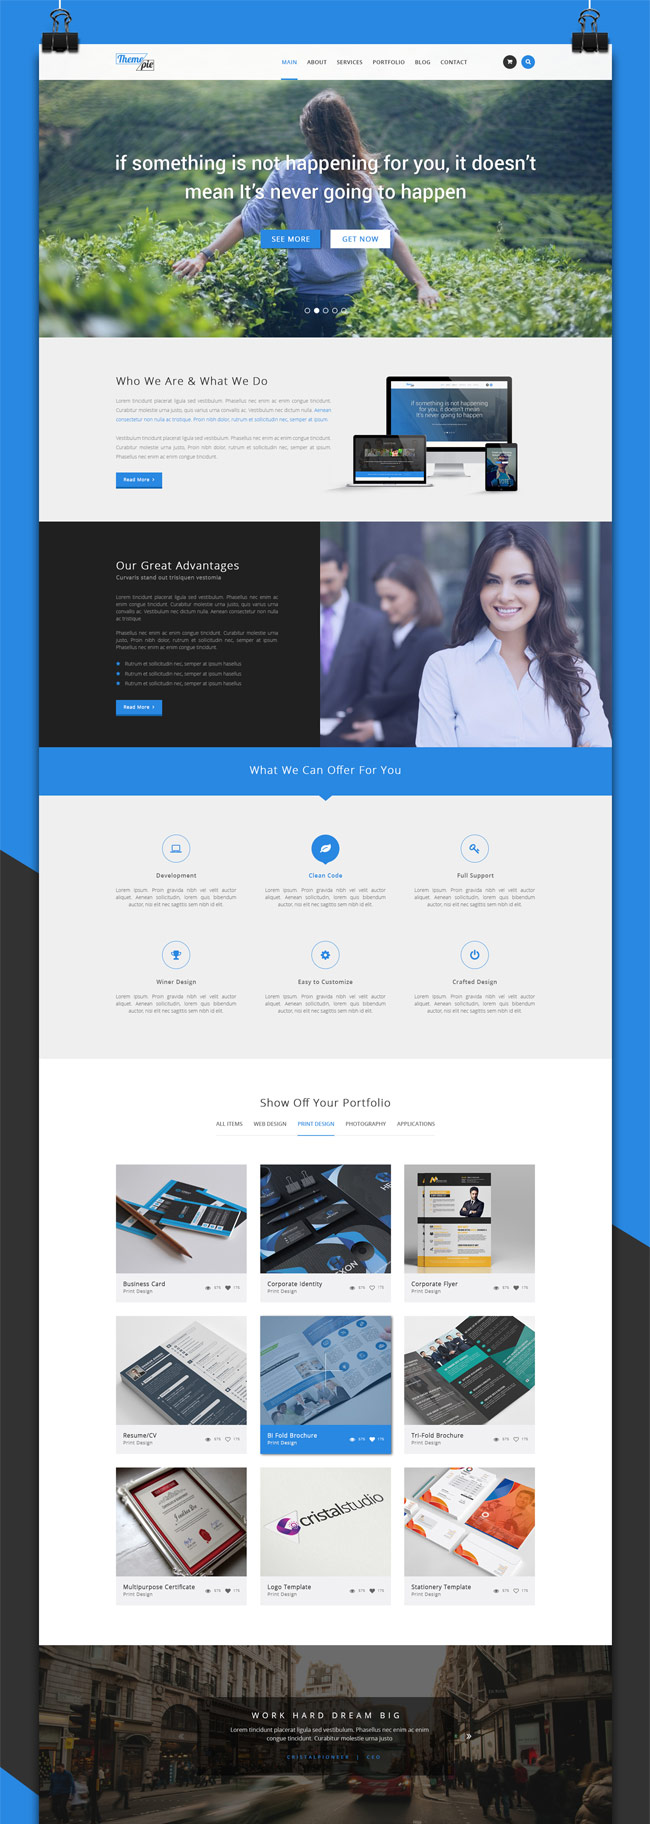 Themepie-Free-One-Page-PSD-Web-Template Web Application Template Psd on resume templates, psd web design, fashion website templates, wedding website templates, psd icon sets, flooring website templates, psd web buttons, design templates, drawn to life templates,